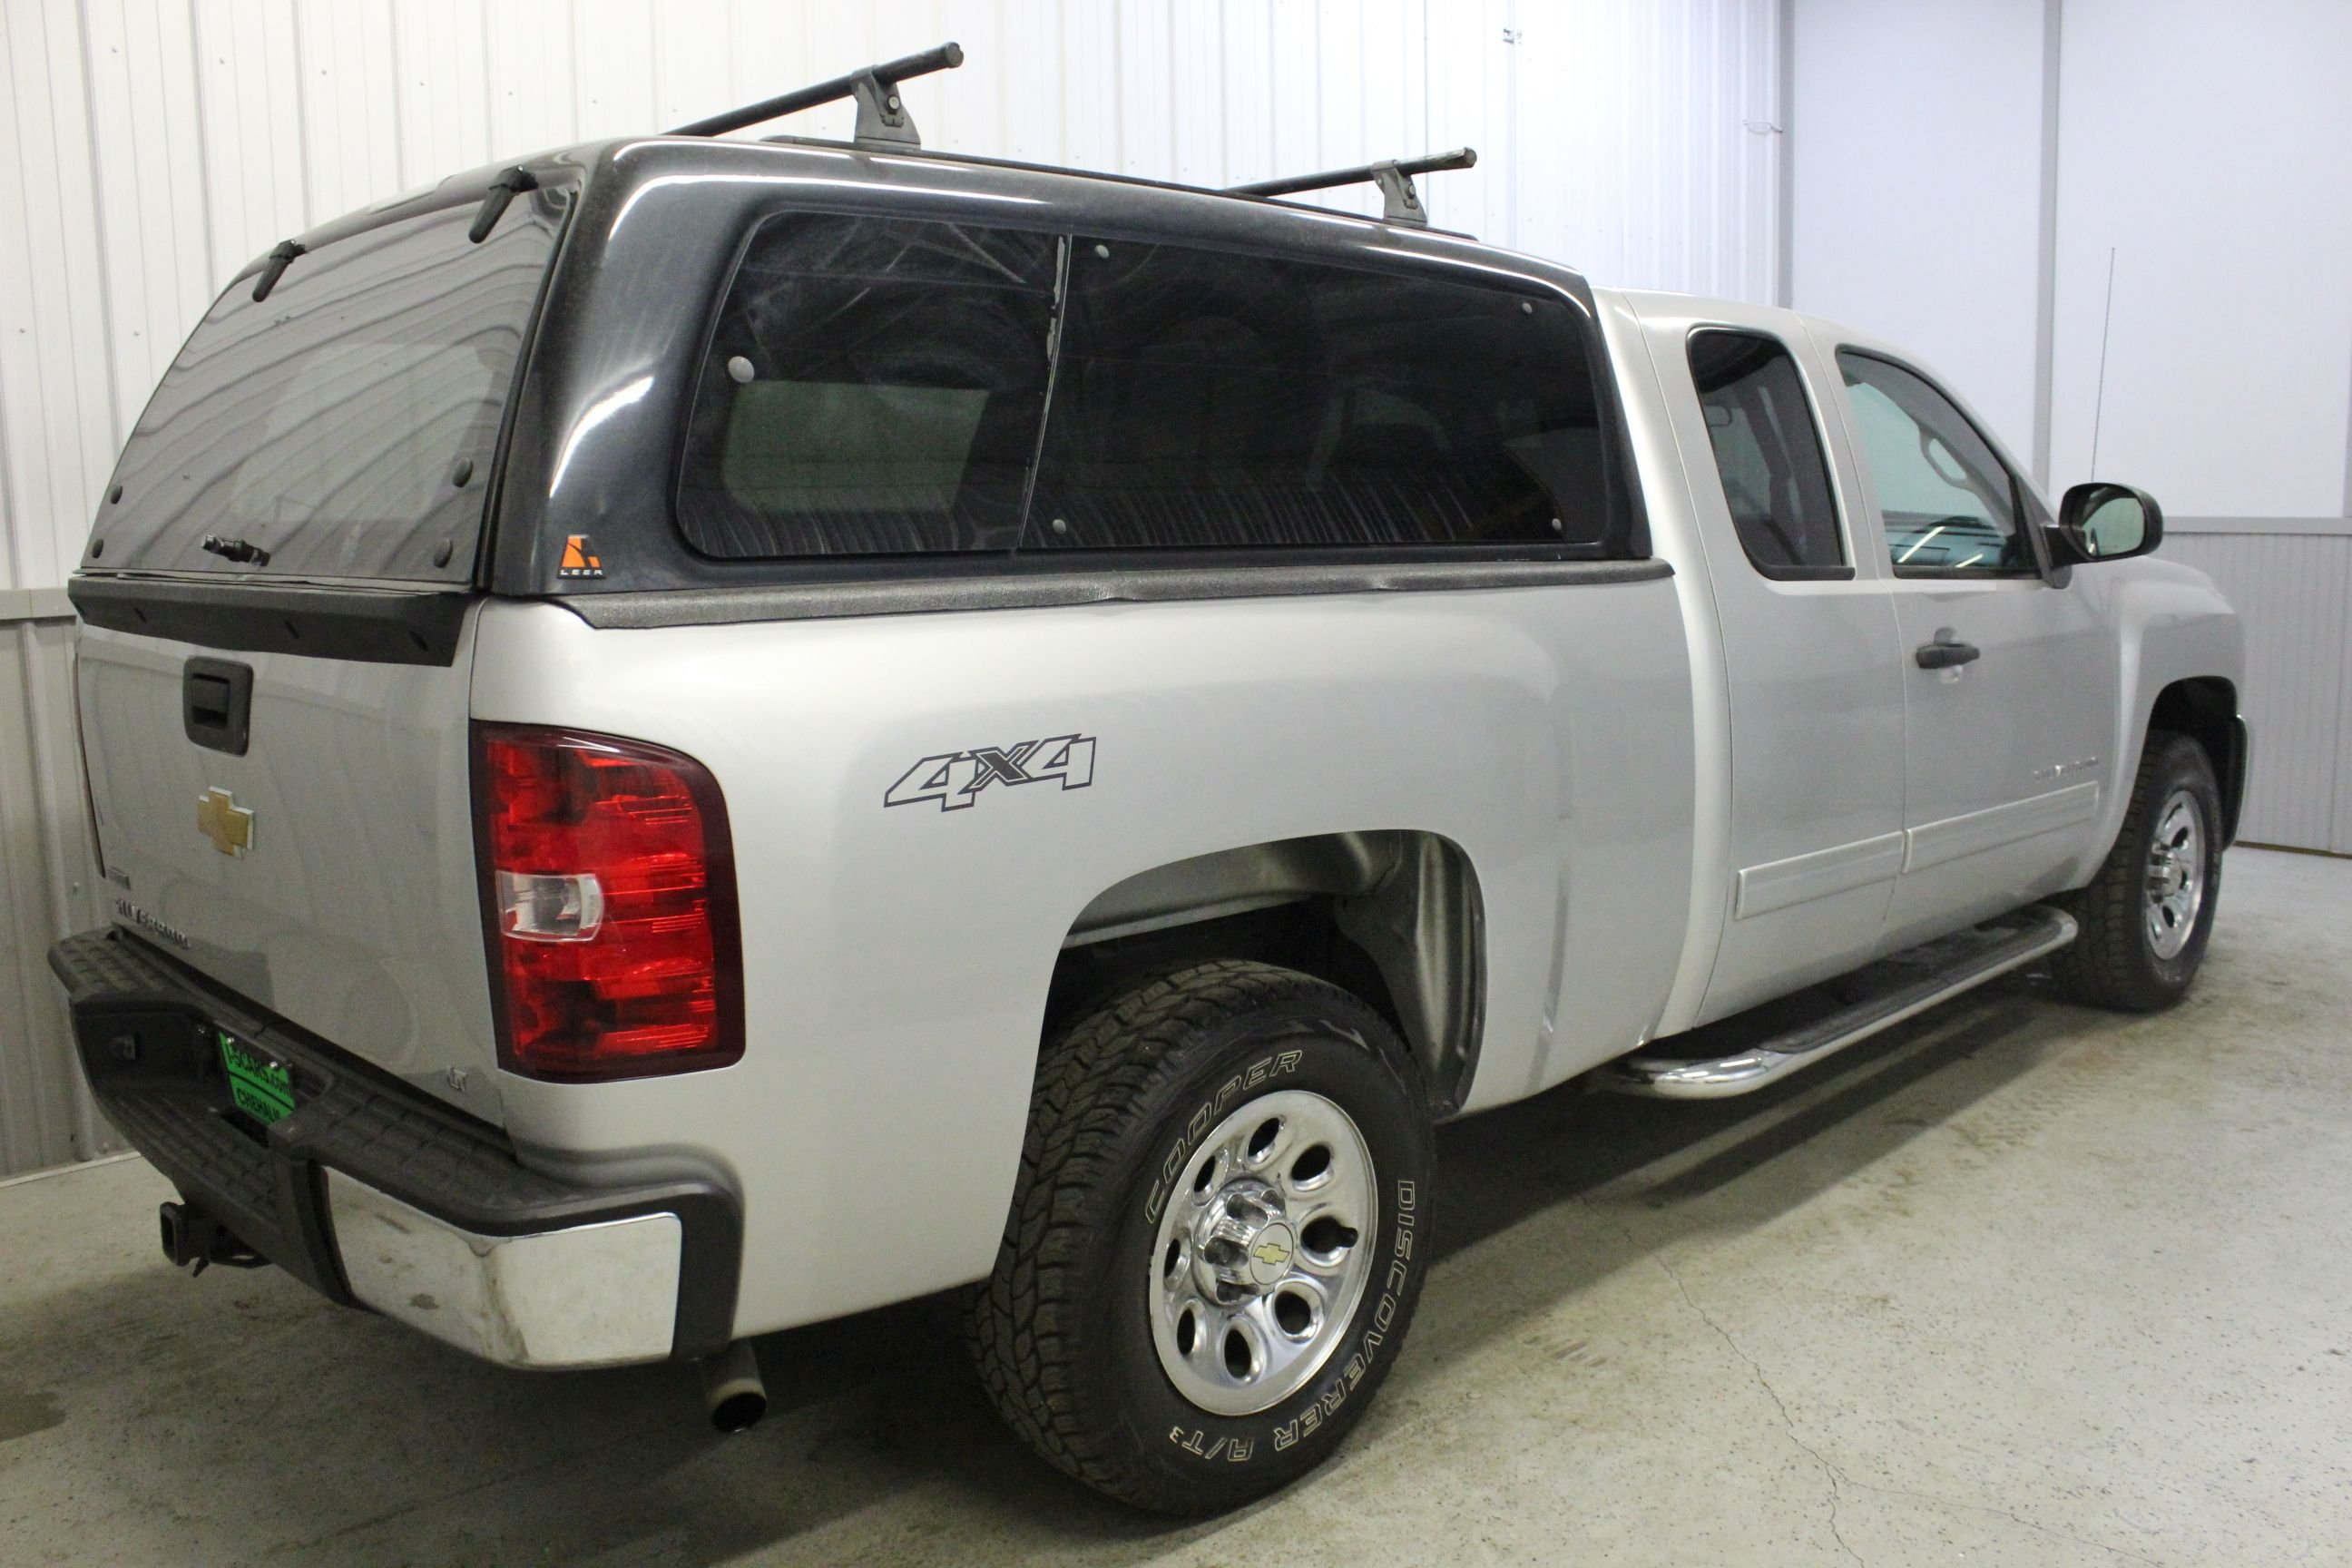 Home dodge exterior amp appearance 94 02 dodge ram 2500 3500 srw - Pre Owned 2012 Chevrolet Silverado 1500 Lt